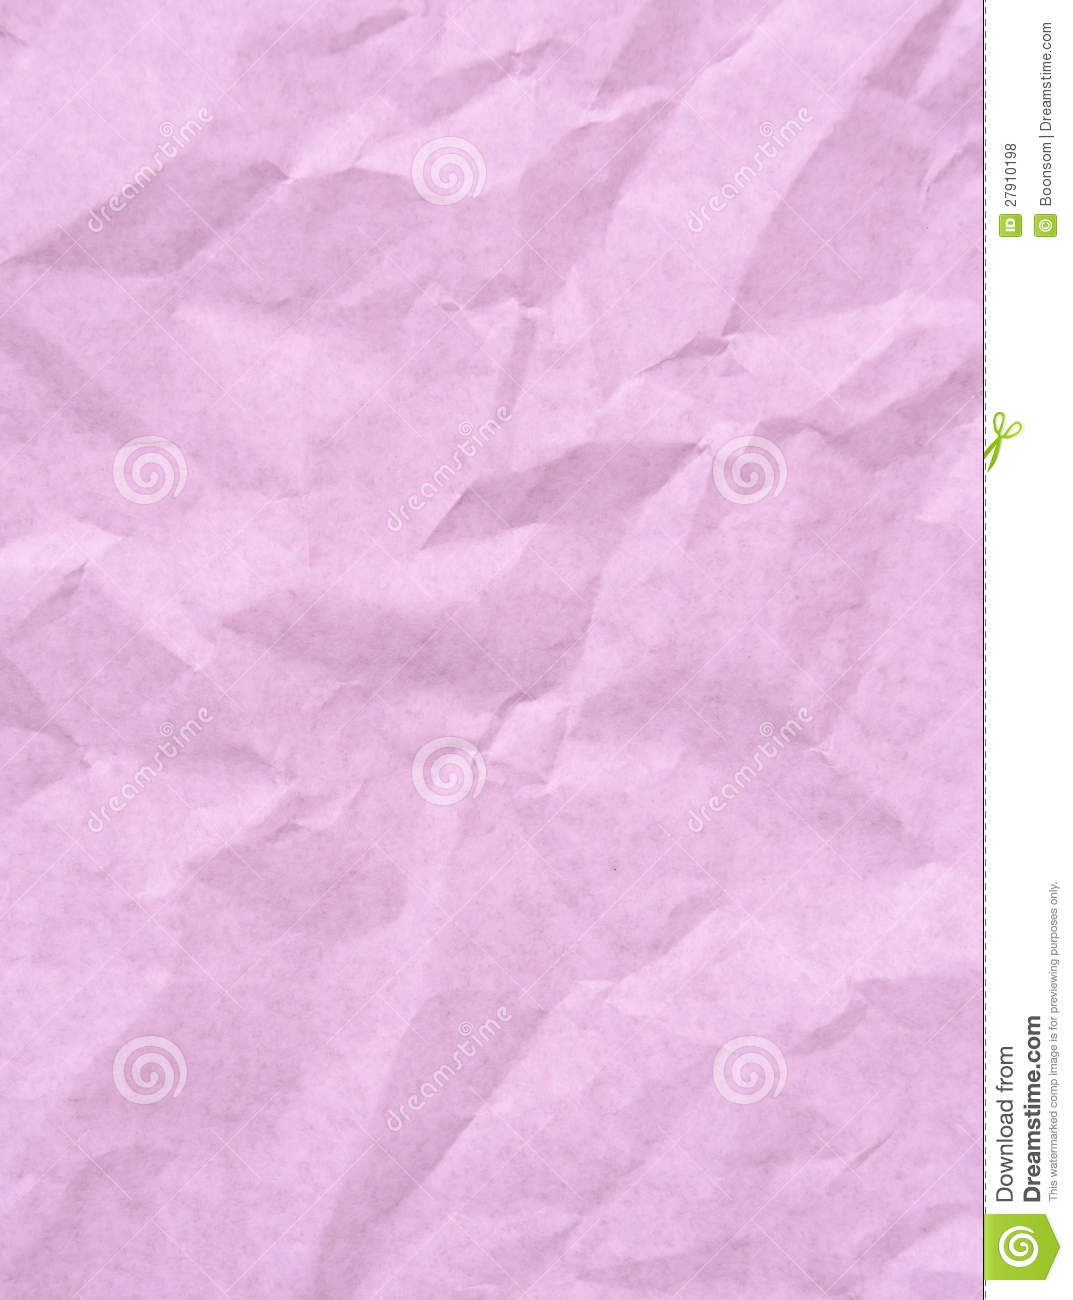 Pink Tissue Paper Texture Royalty Free Stock Photos ...